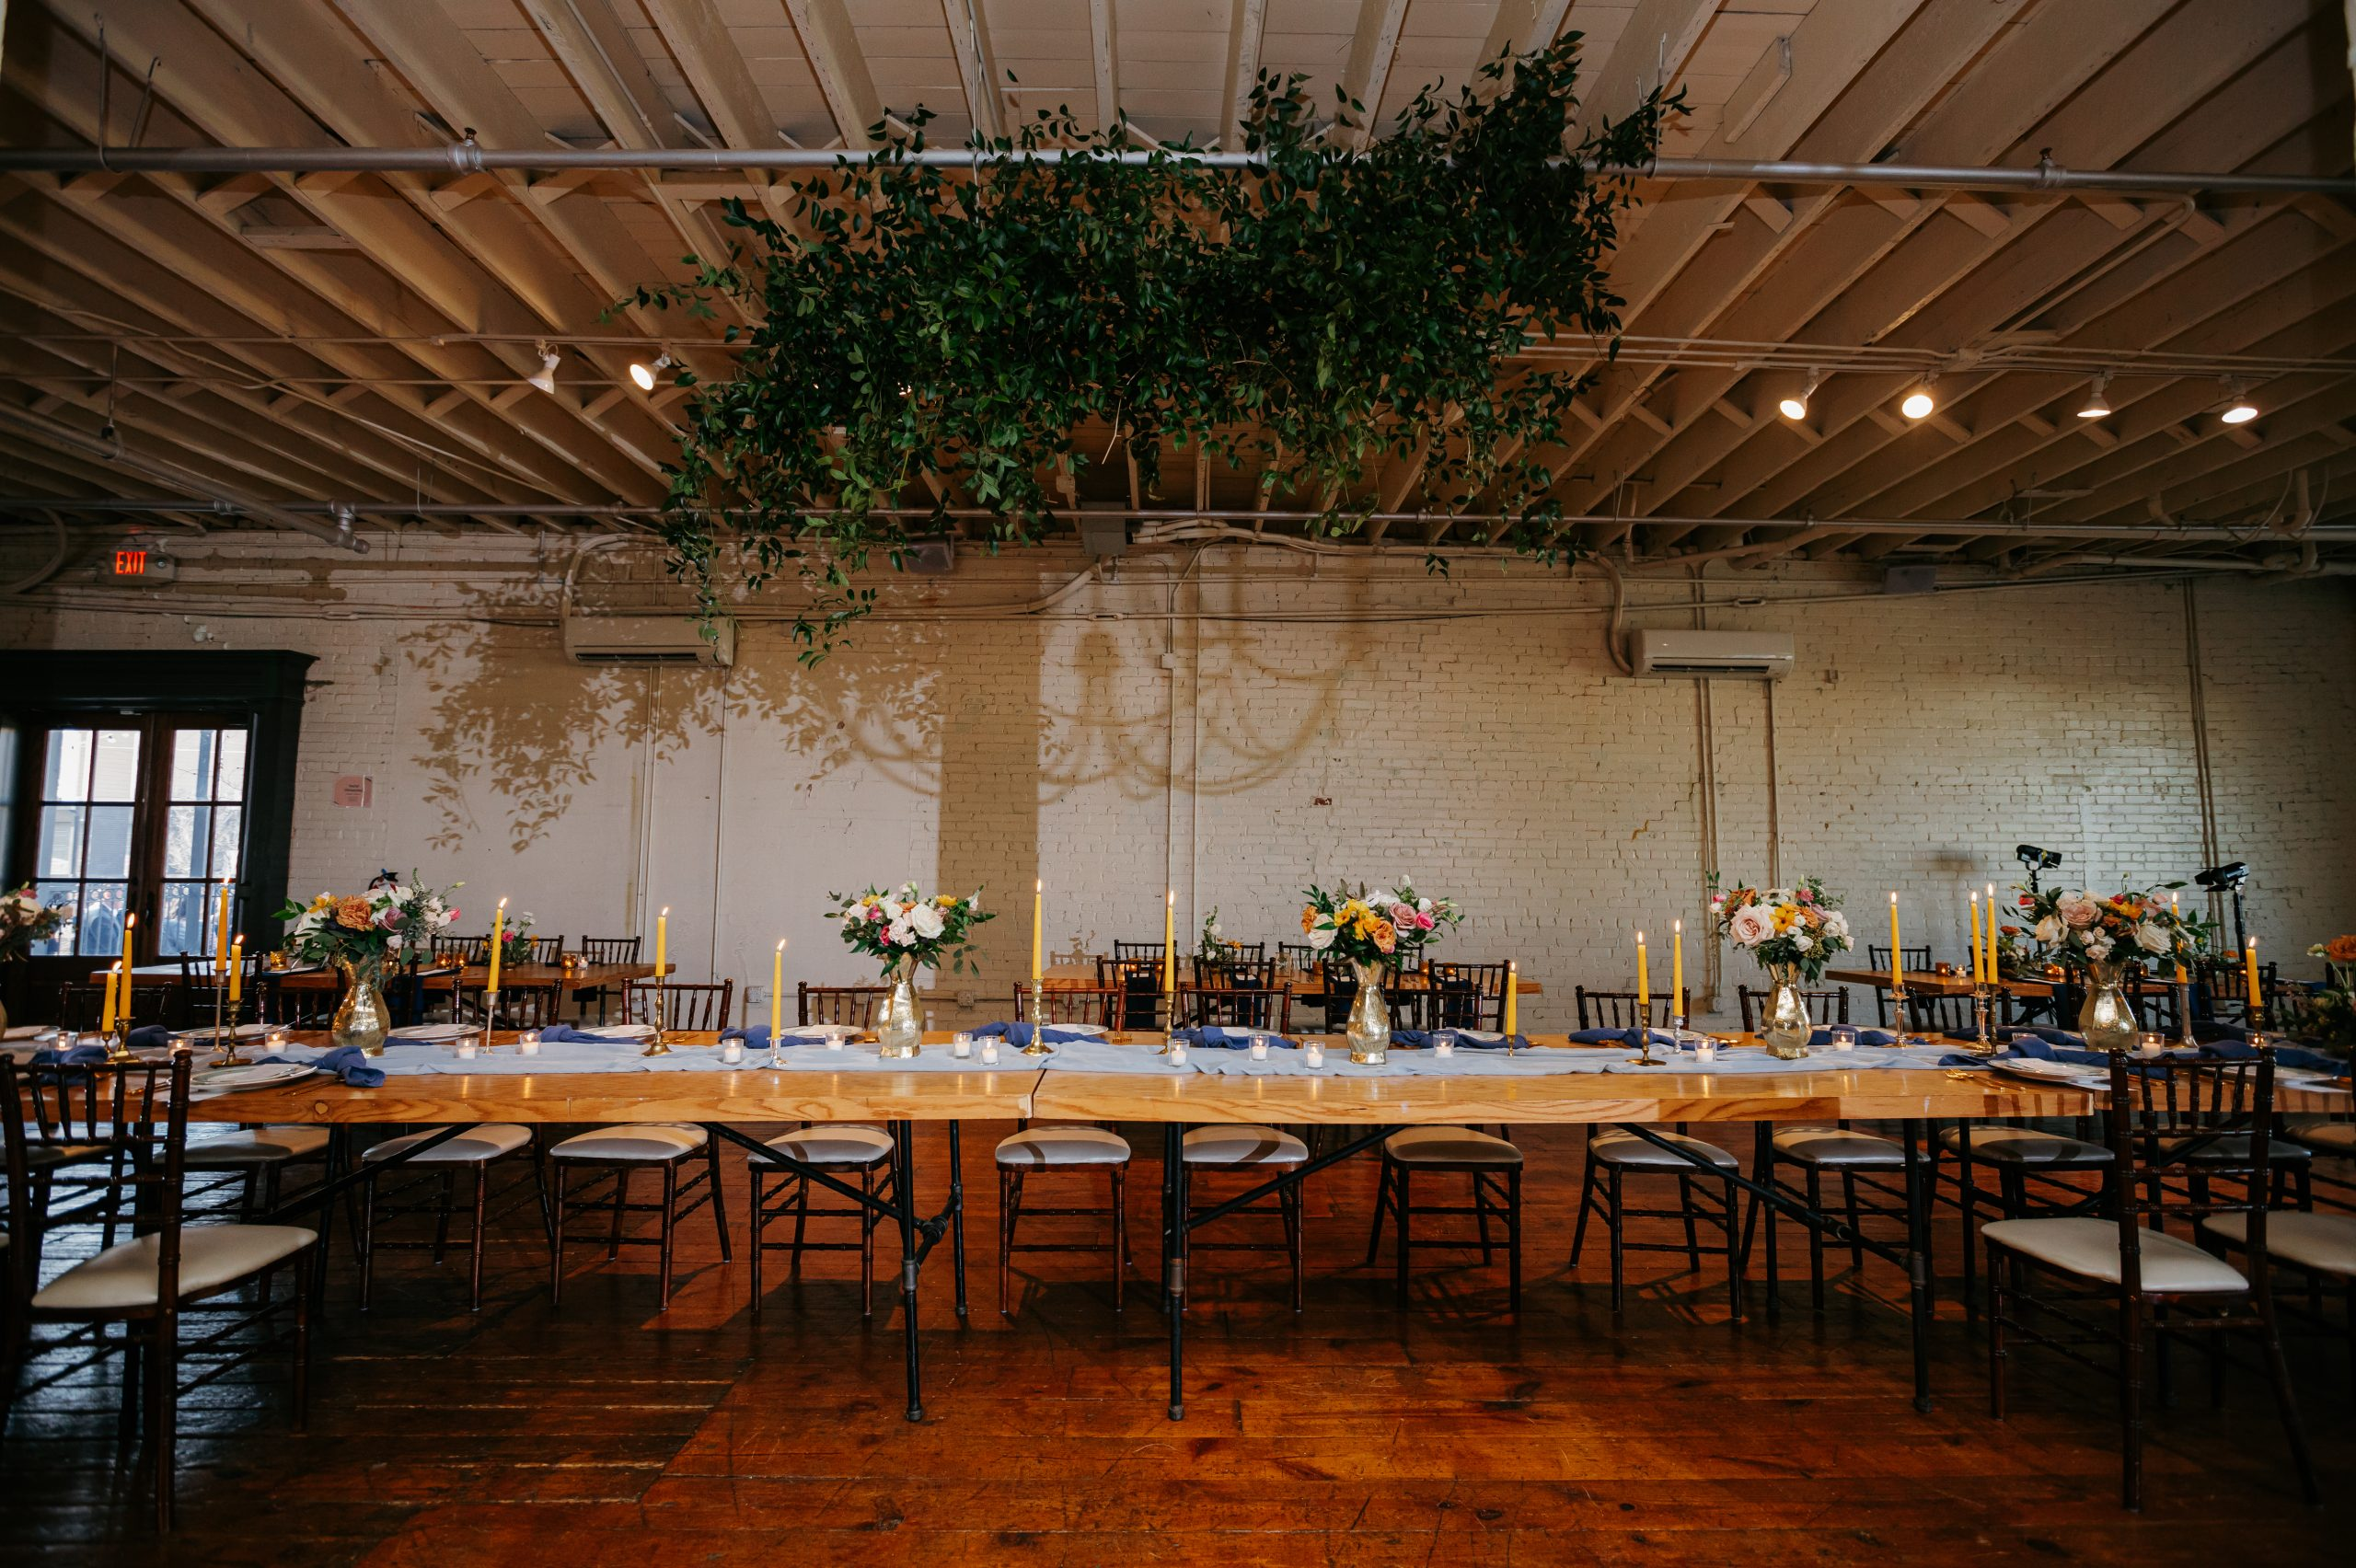 French Quarter Vibes for Caitie & George's Wedding at Brik Venue - Silver Bear Creative